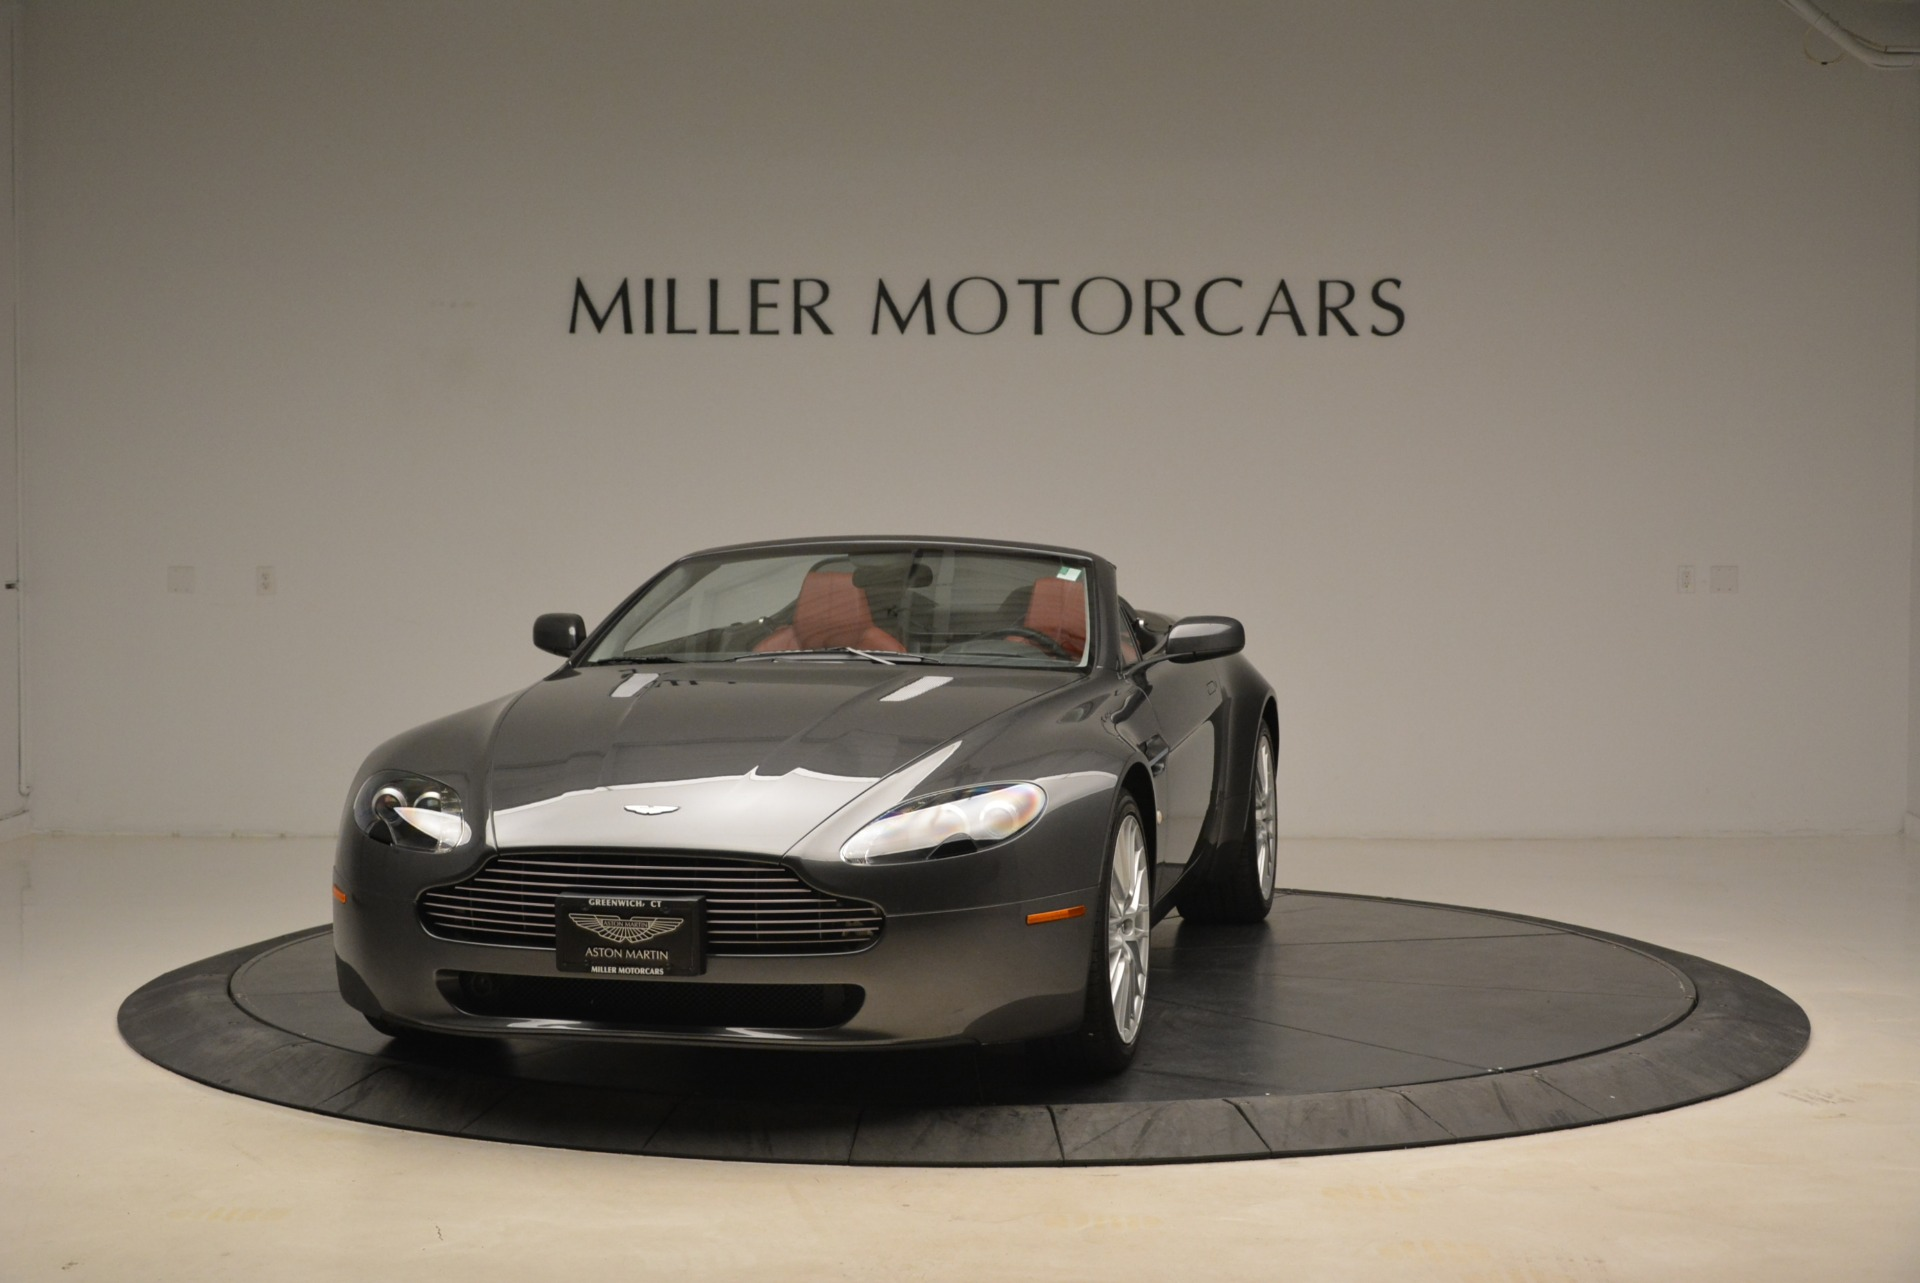 Used 2009 Aston Martin V8 Vantage Roadster For Sale 52900 In Greenwich, CT